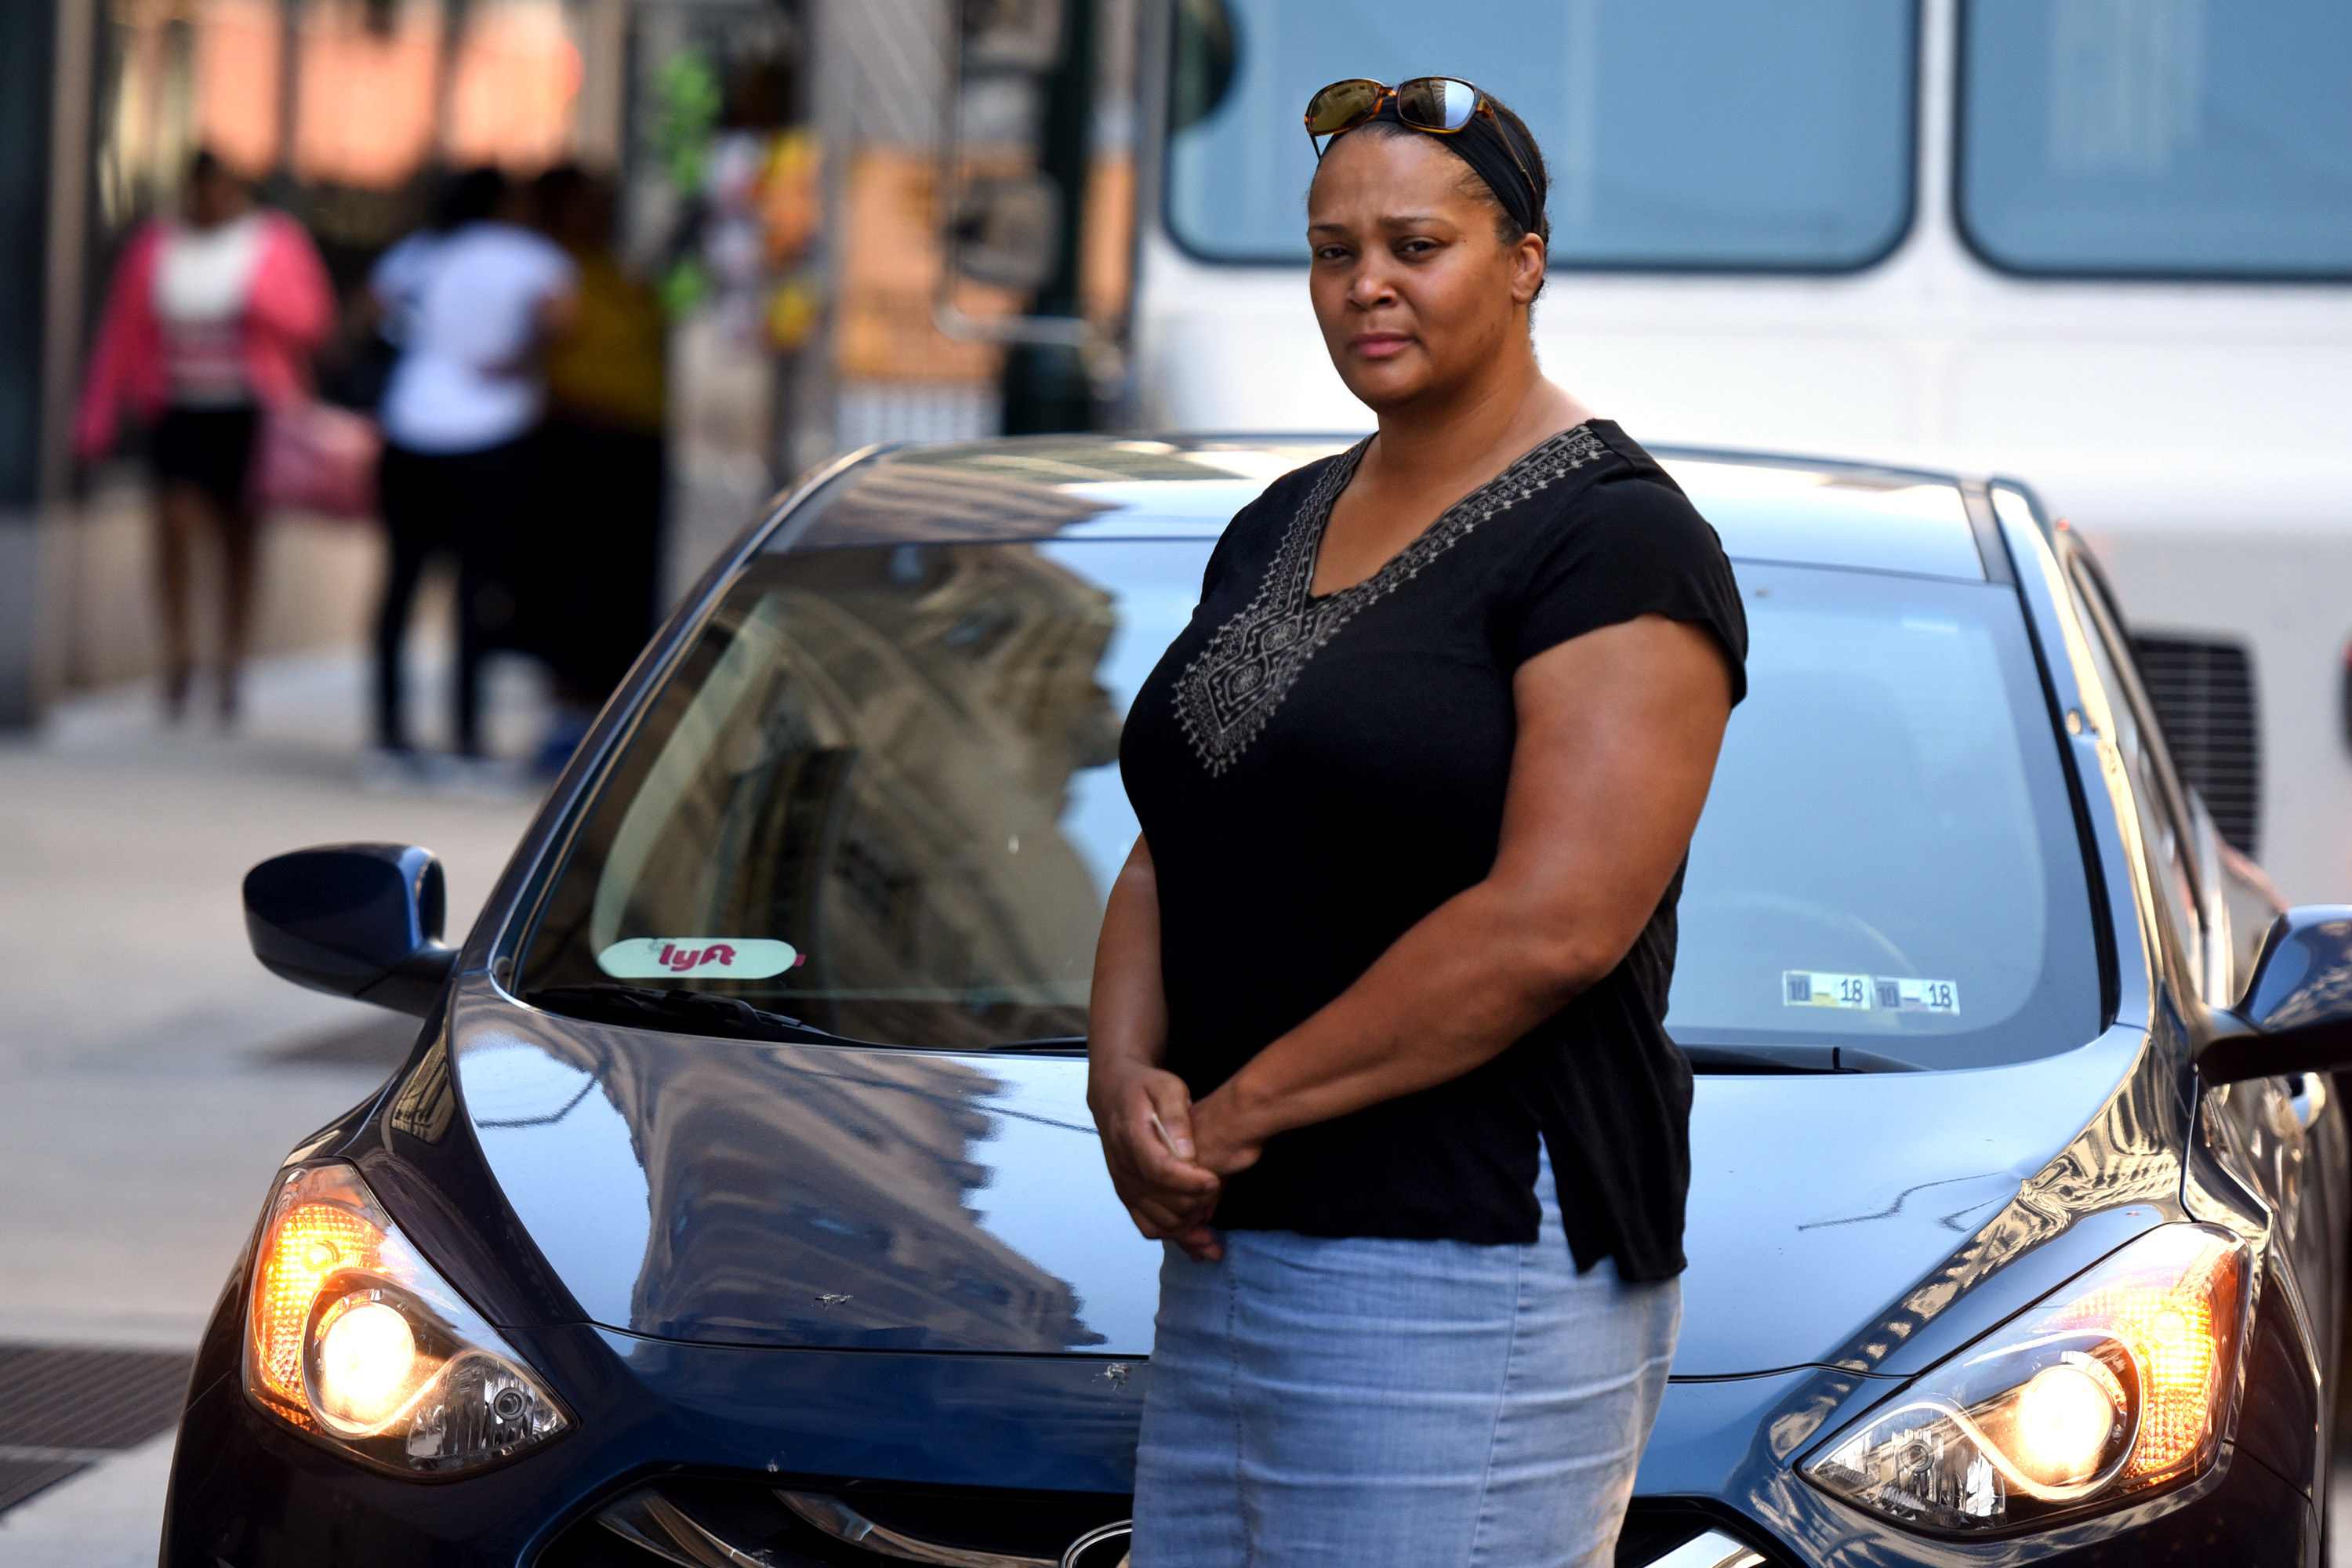 Lyft driver Kenita Jalivay poses outside her vehicle July 9, 2018. The previous night she was trapped in the middle of a shooting scene, and Lyft gave her $5 reimbursement for her trouble and her trauma, having to cancel her last ride. TOM GRALISH / Staff Photographer